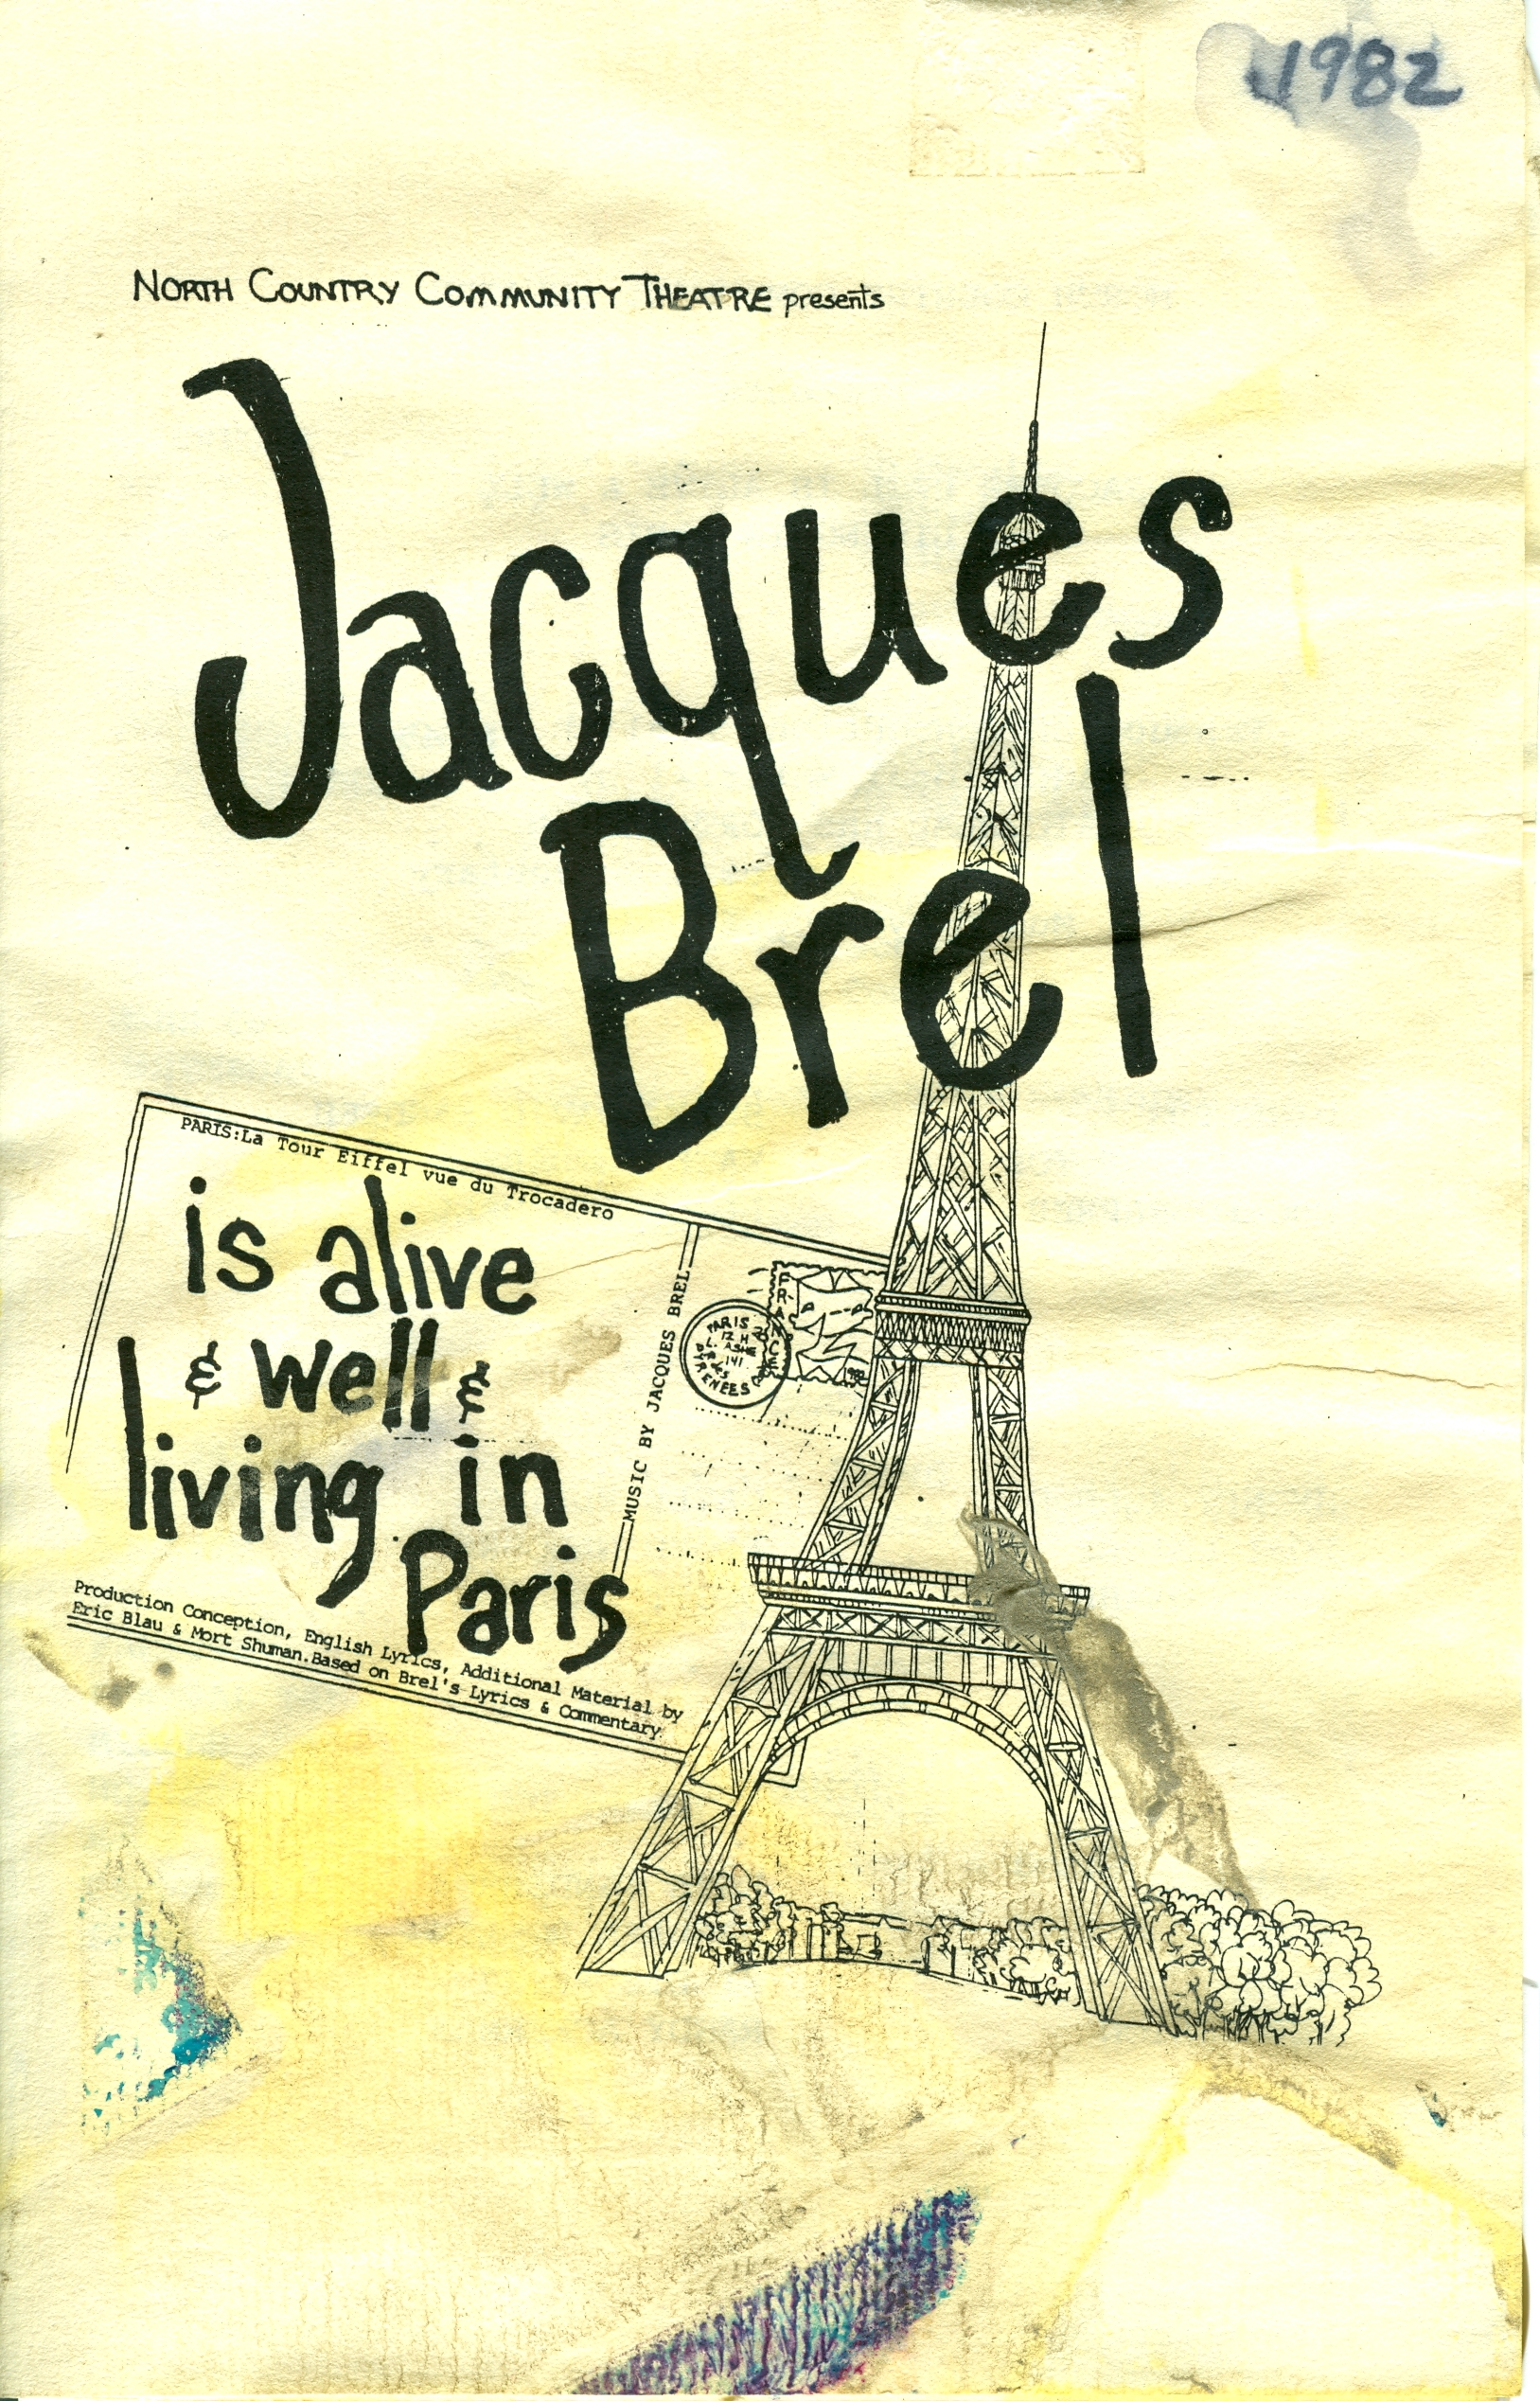 1982-Jaques-Brel-is-Alive-and-Well